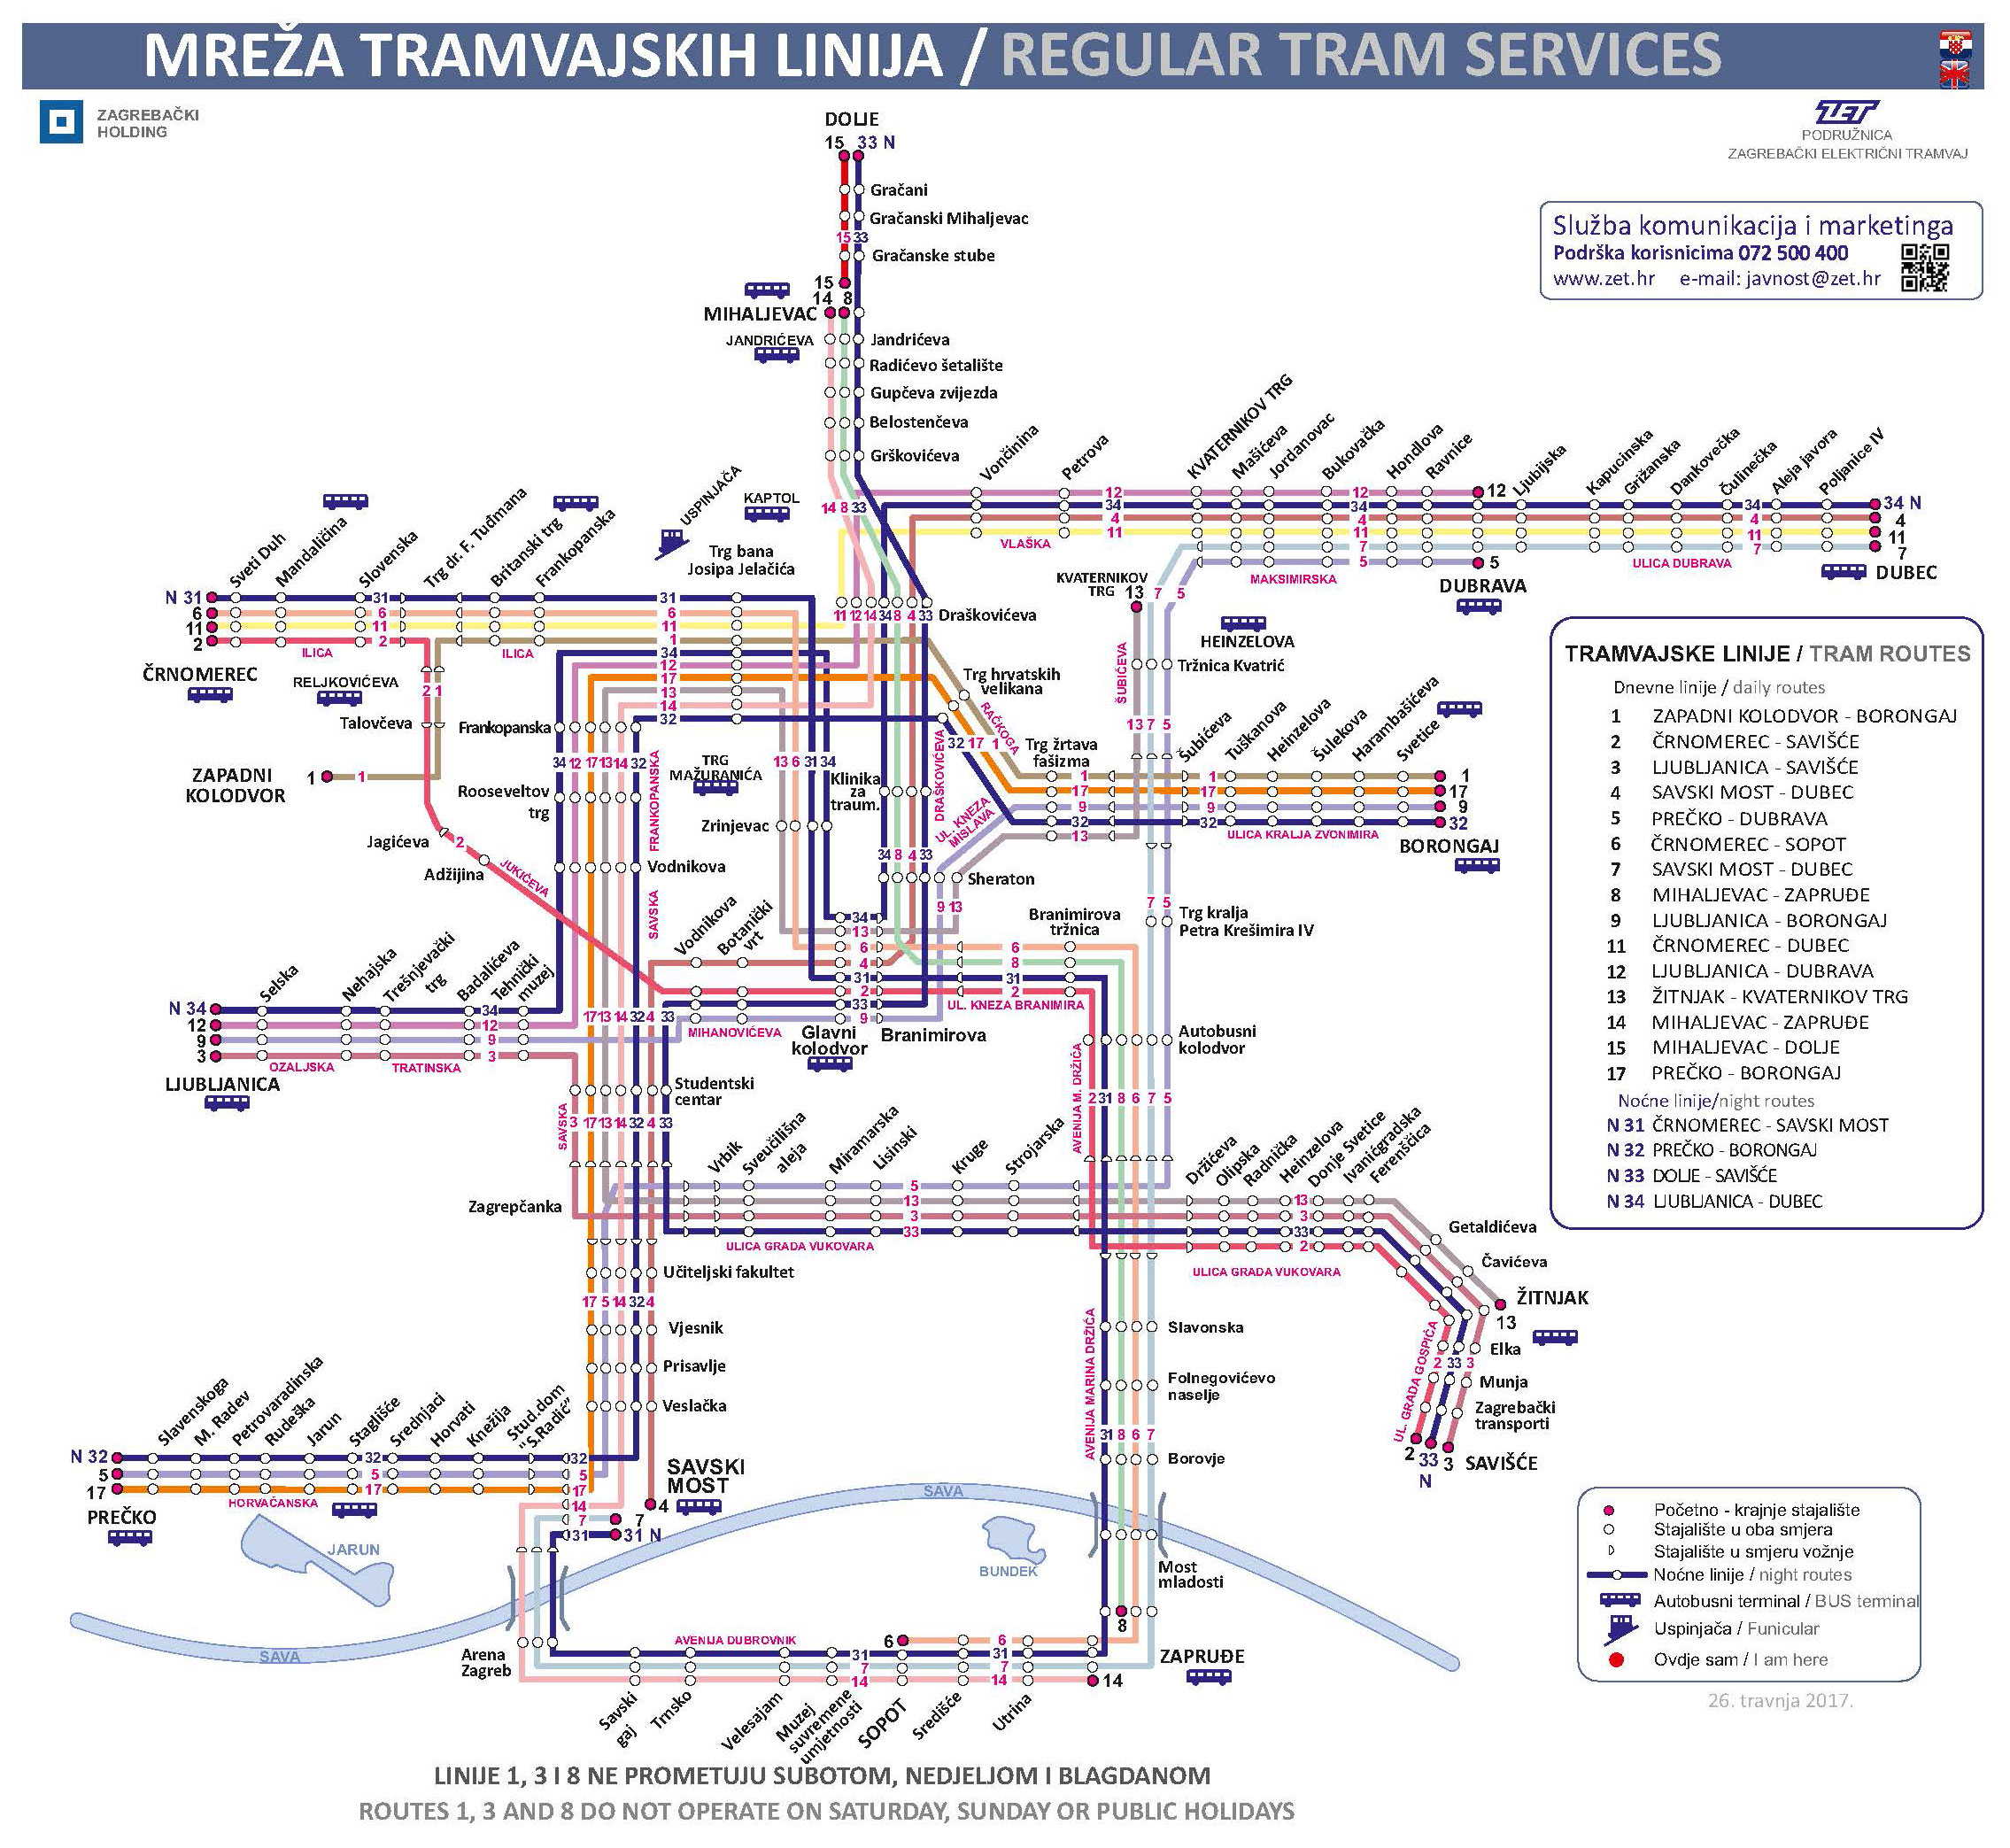 Game Of Thrones Subway Map.Zet Zagreb Day Night Tram Maps Expat In Croatia